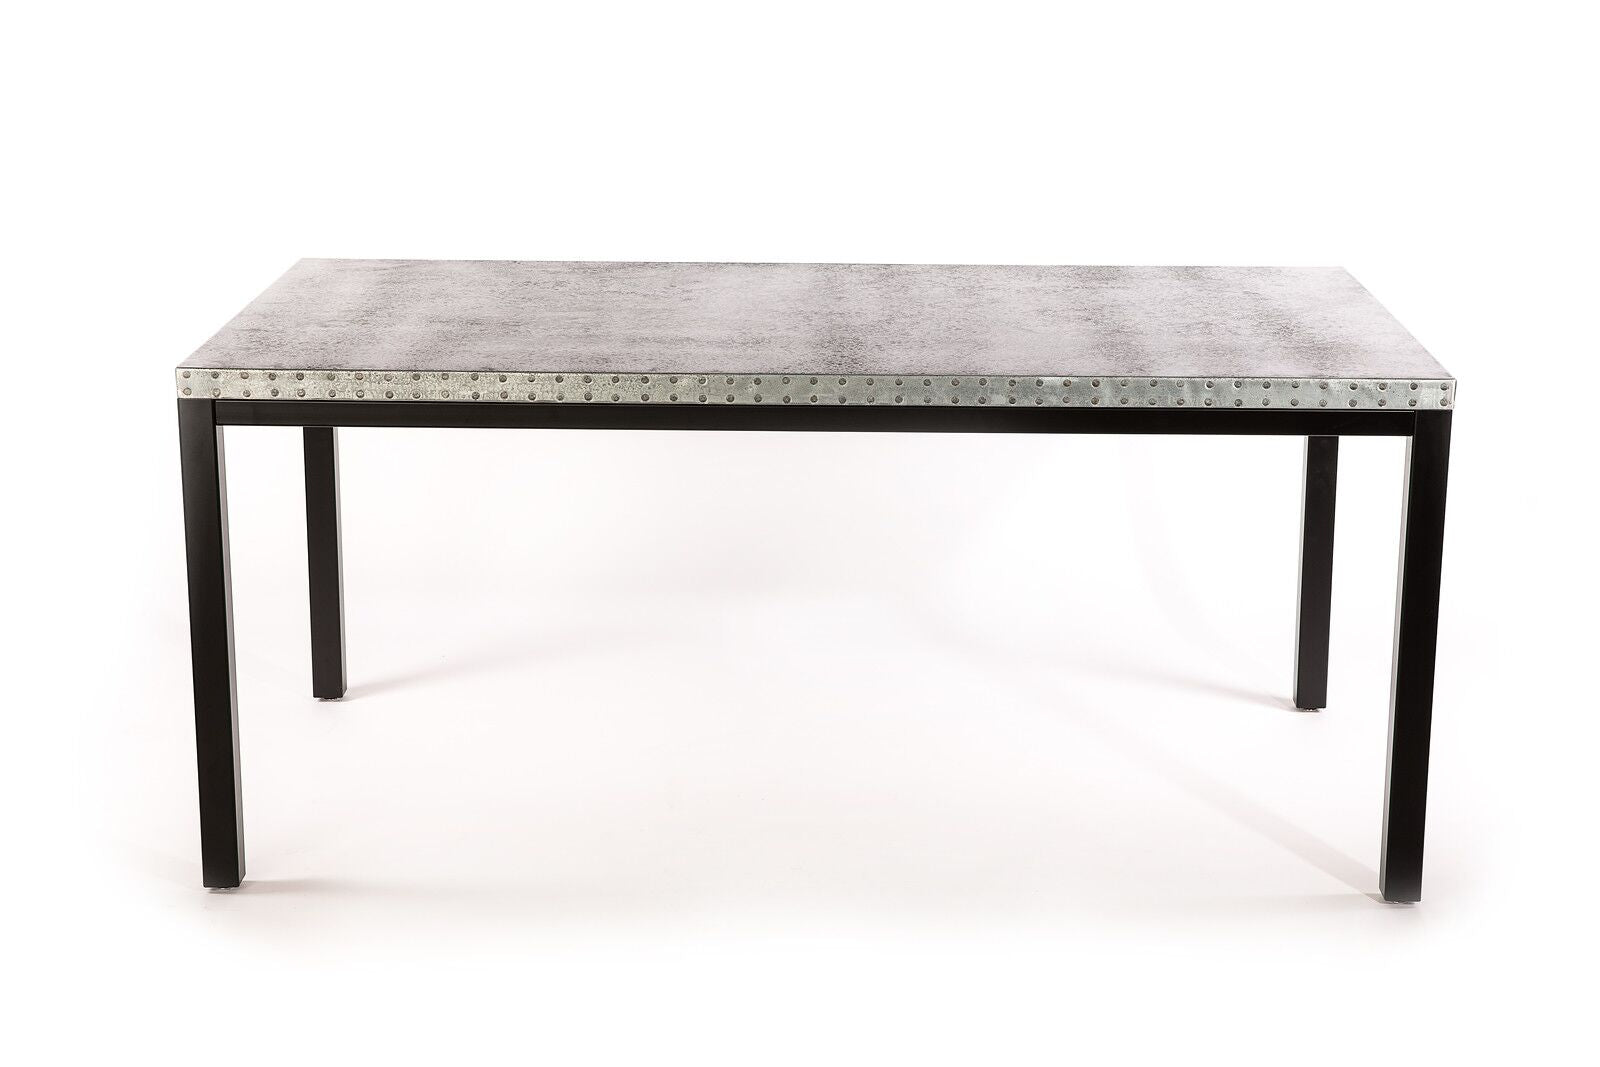 "Zinc Rectangular Table | Brooklyn Table | CLASSIC | Black | CUSTOM SIZE | 1.5"" Standard 